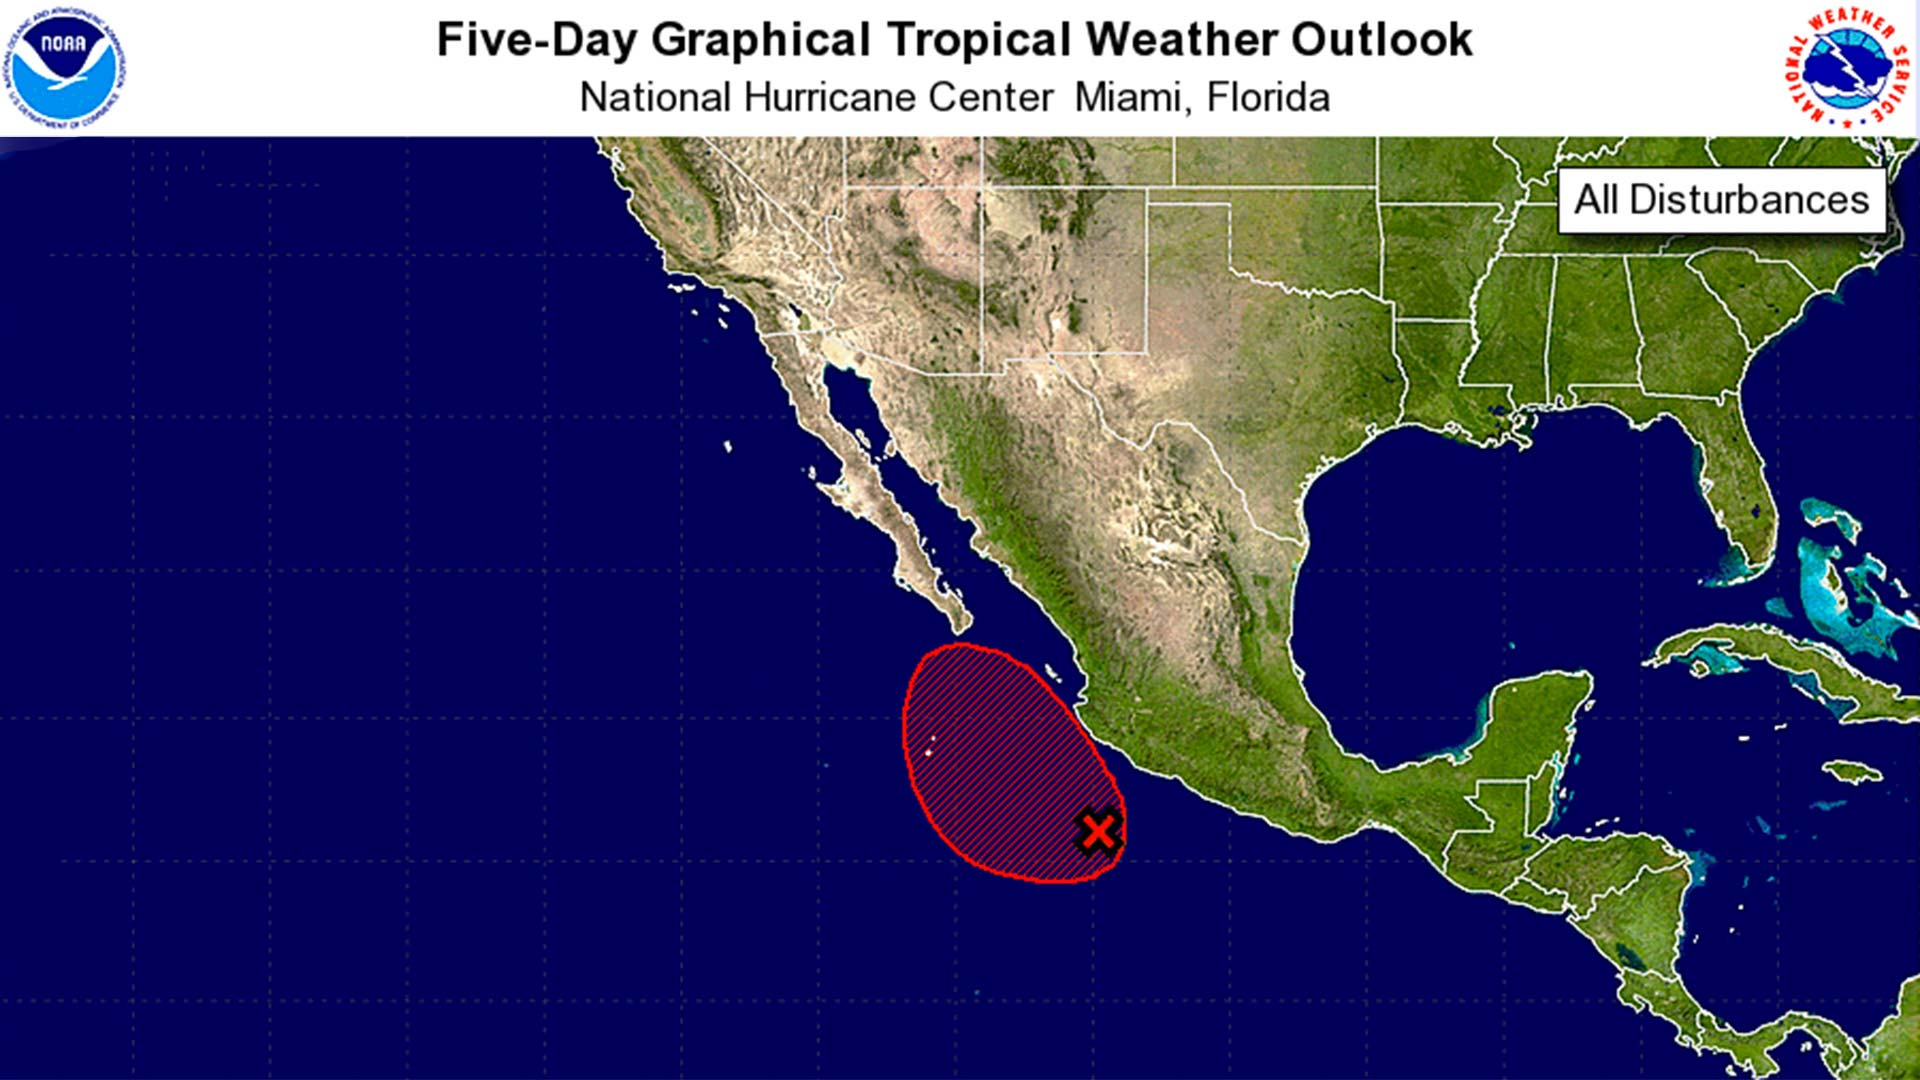 The five-day outlook shows a strong chance that a cyclone will form of the Baja Peninsula by the end of the week, possibly bringing storms to Southern Arizona.